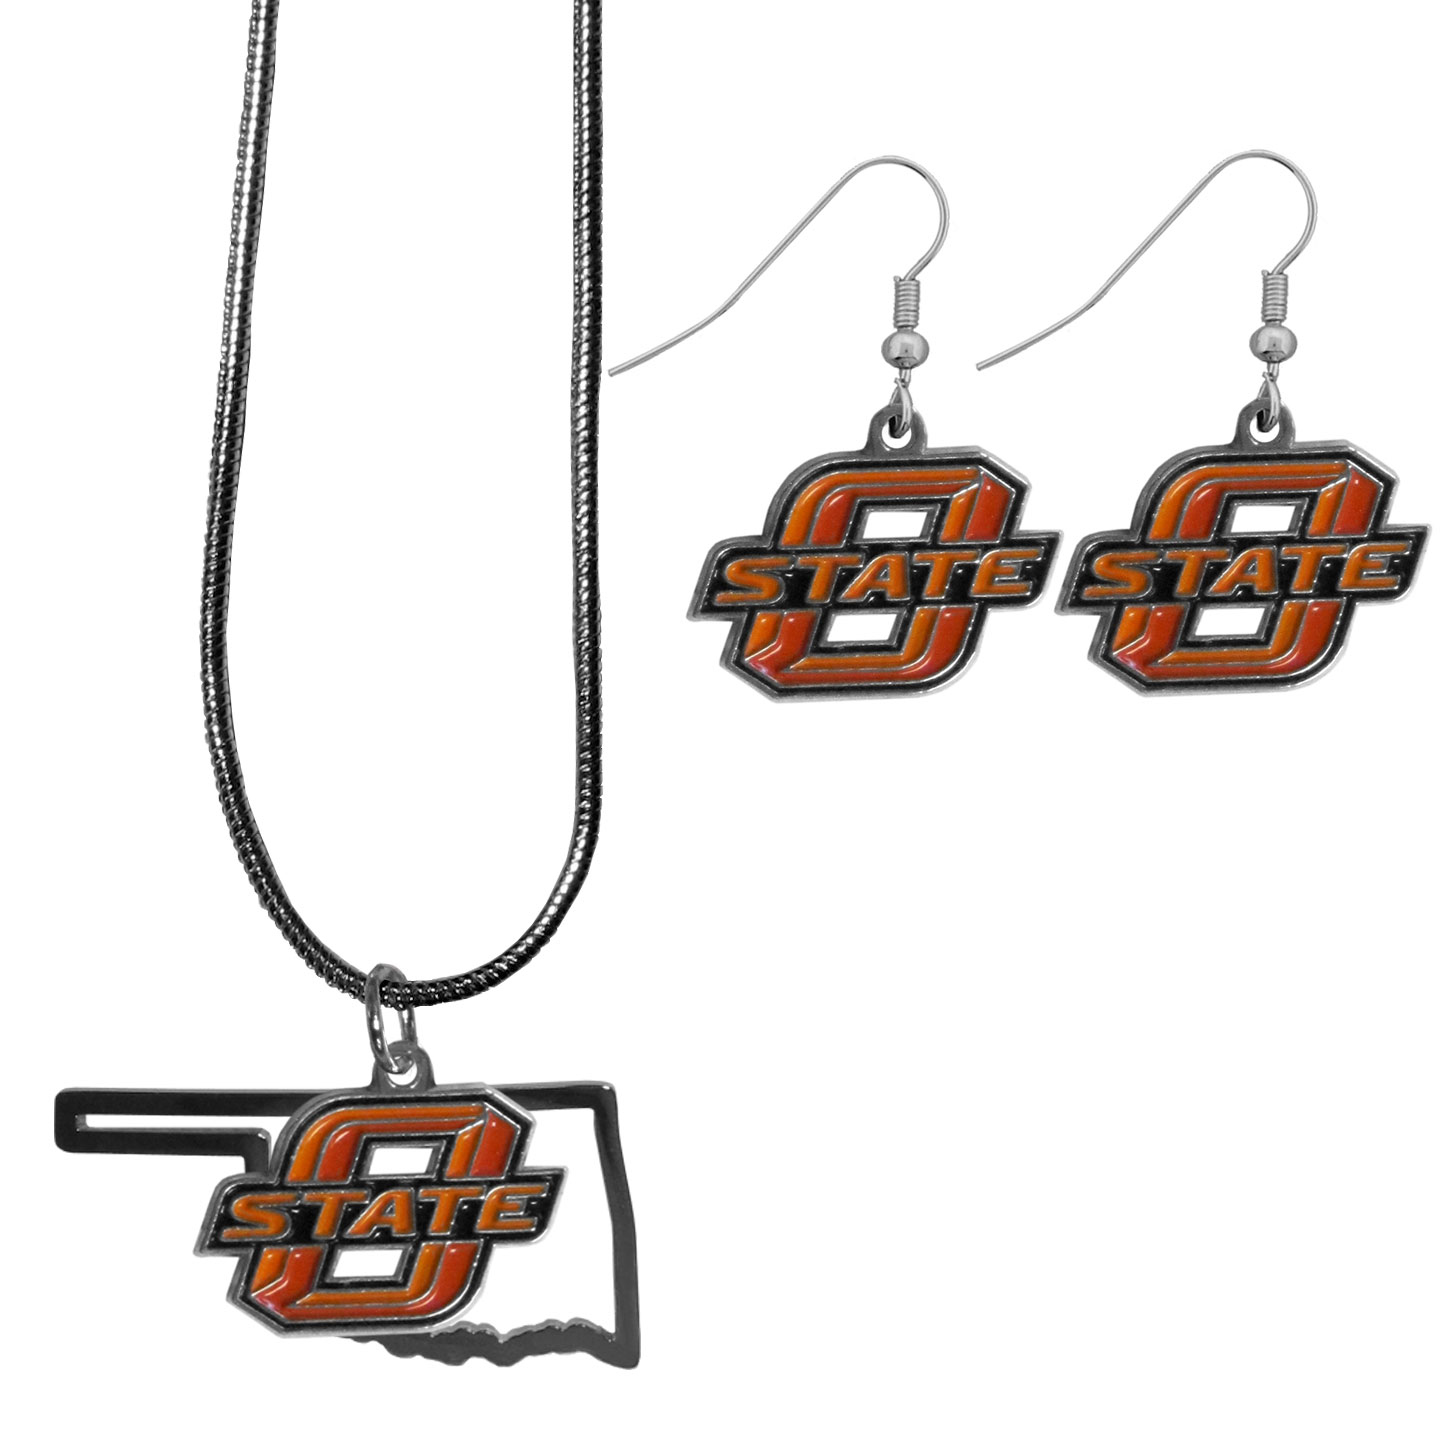 Oklahoma St. Cowboys Dangle Earrings and State Necklace Set - Get in on the trend! State themes are a trend that just keeps getting more popular and this jewelry set takes the state style and give it a sporty twist with a Oklahoma St. Cowboys necklace that features an Arizona state outline charm paired with a beautiful team charm and matching team charm dangle earrings. The earrings feature hypoallergenic fishhook posts that are nickel free.